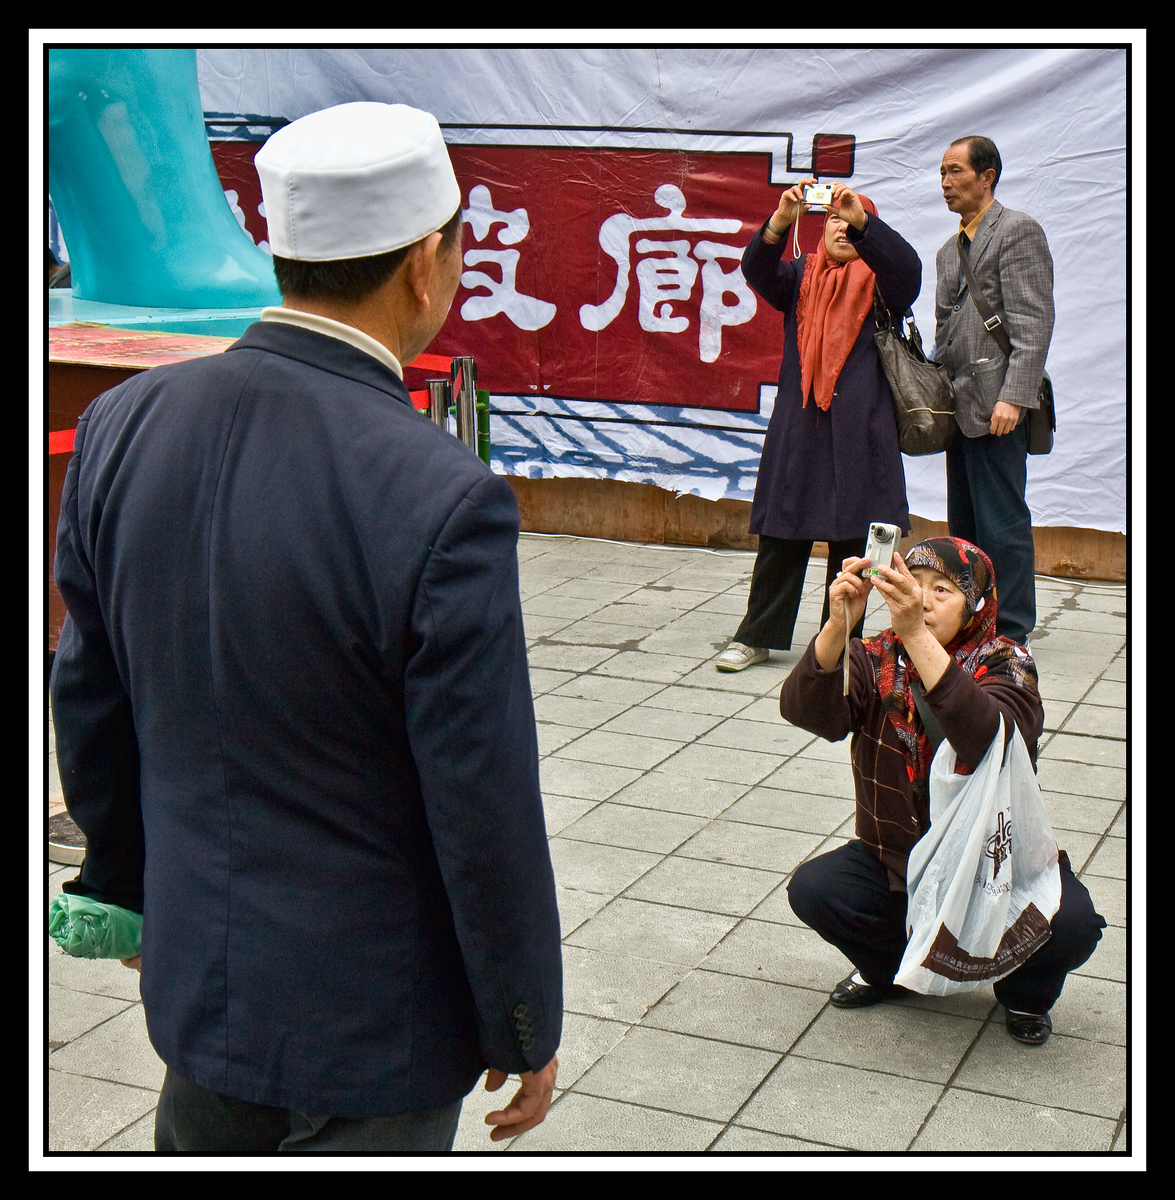 IMAGE: https://photos.smugmug.com/Travel/Chiba-Focus-Tour-2010-Shanghai/i-VNSrqLs/1/2406ee72/X3/Shanghai%2019-X3.jpg